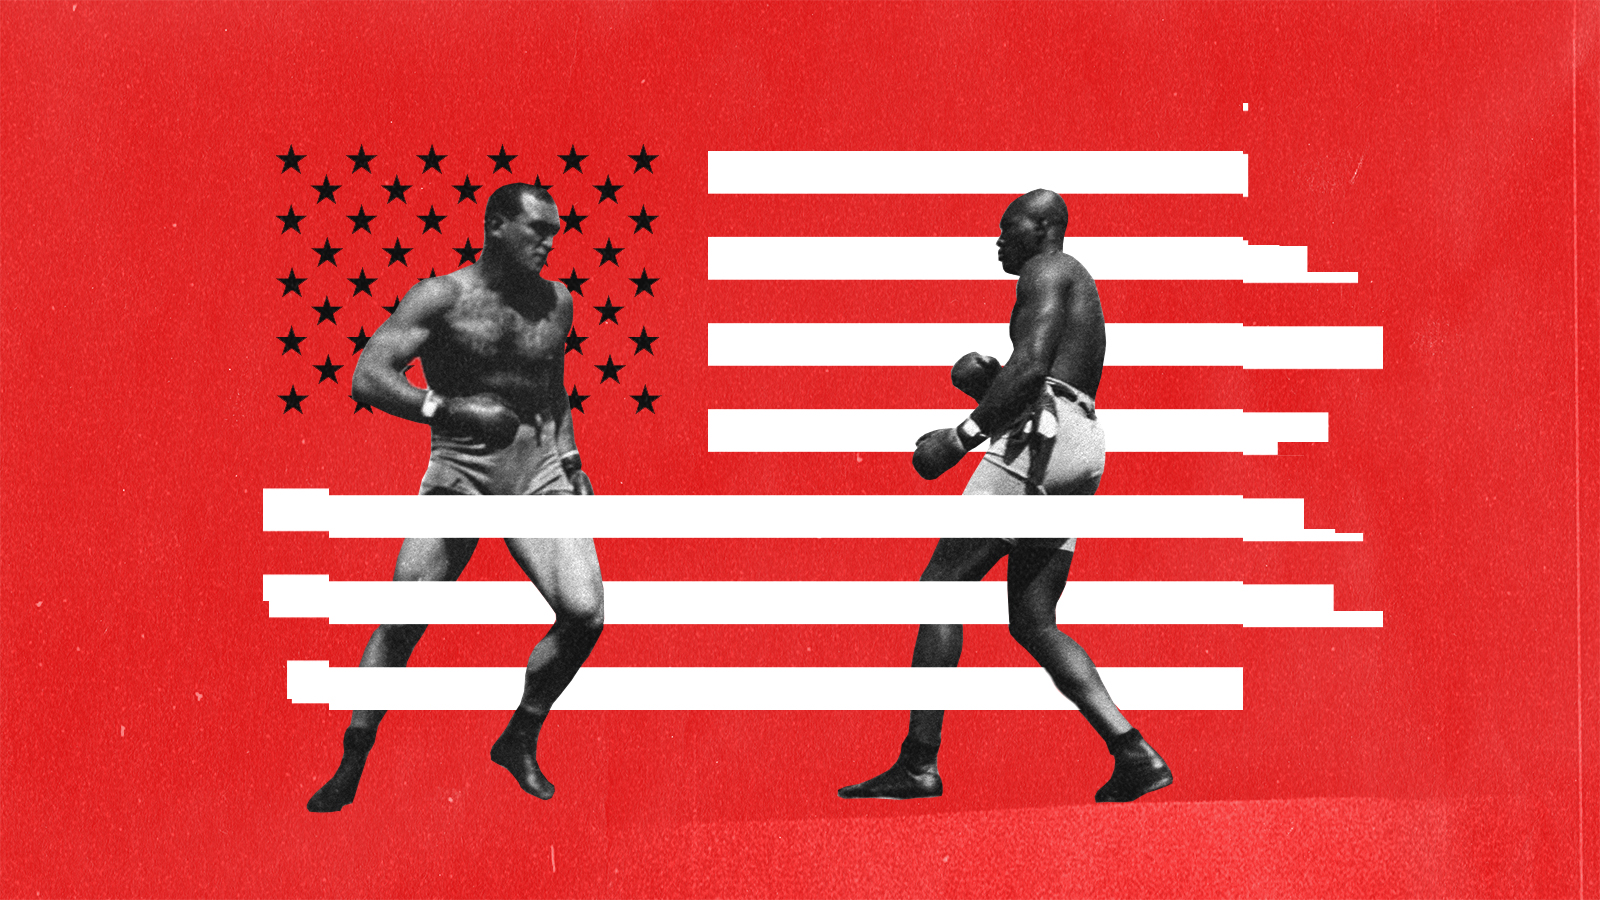 Jack Johnson: The Black boxer who sparked race riots after world heavyweight win